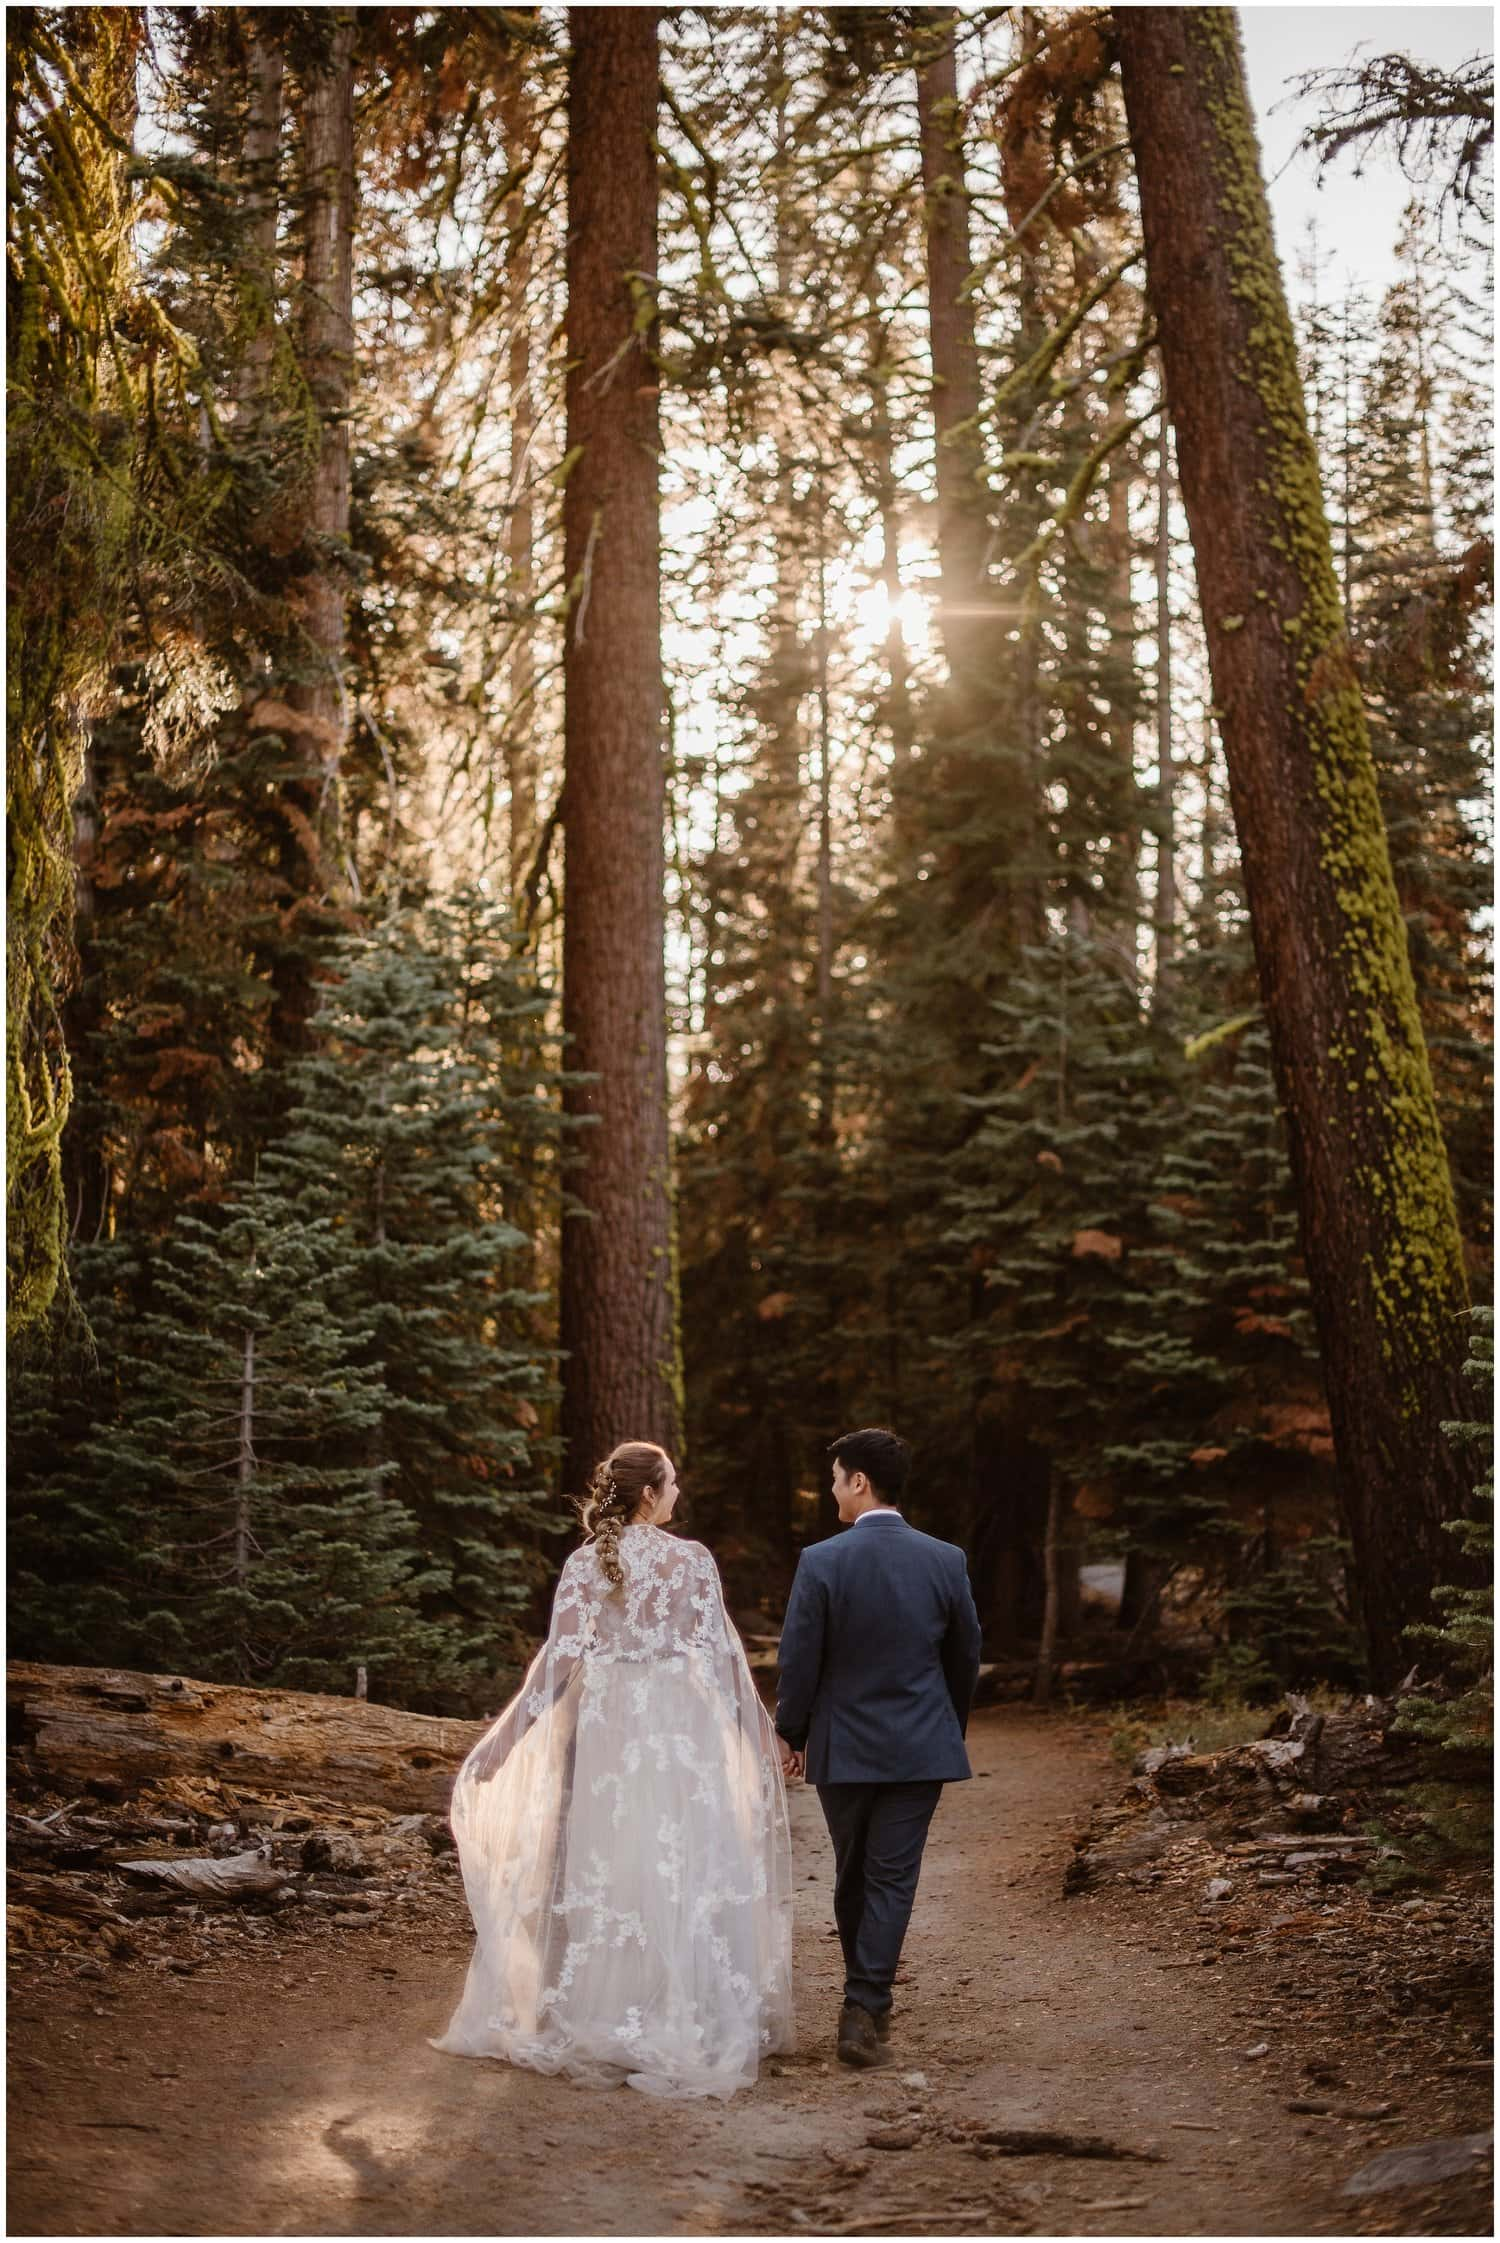 Bride and groom walk hand in hand in a forest in California on their wedding day.